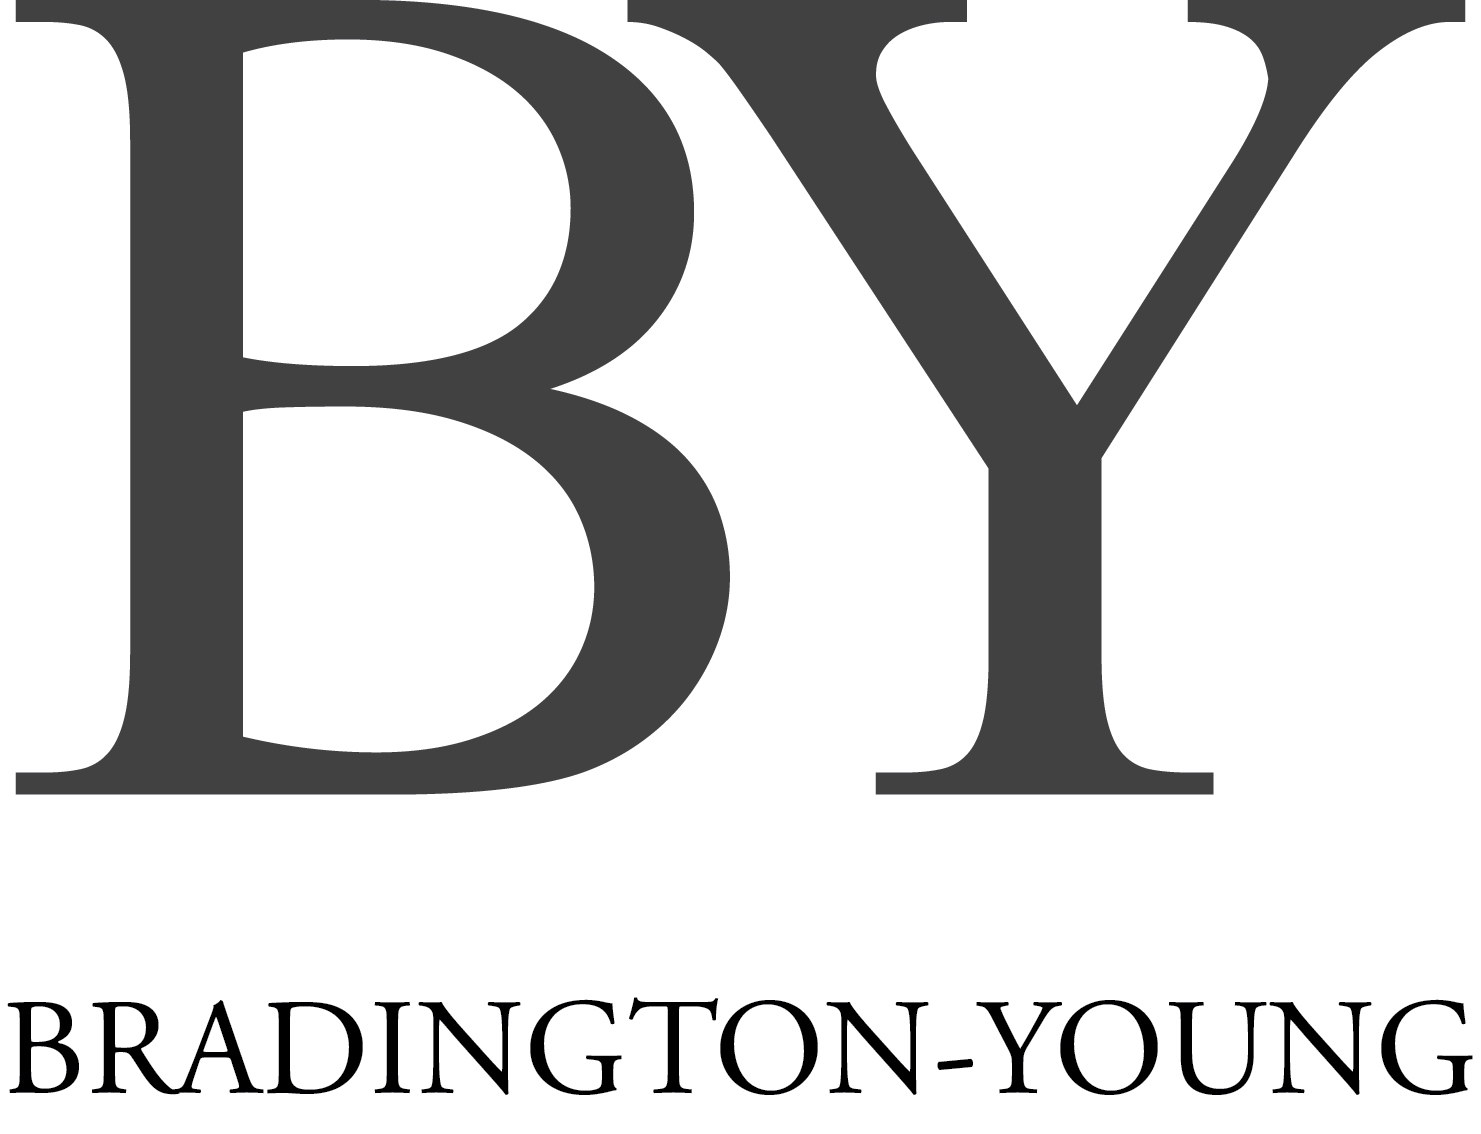 Bradington-Young